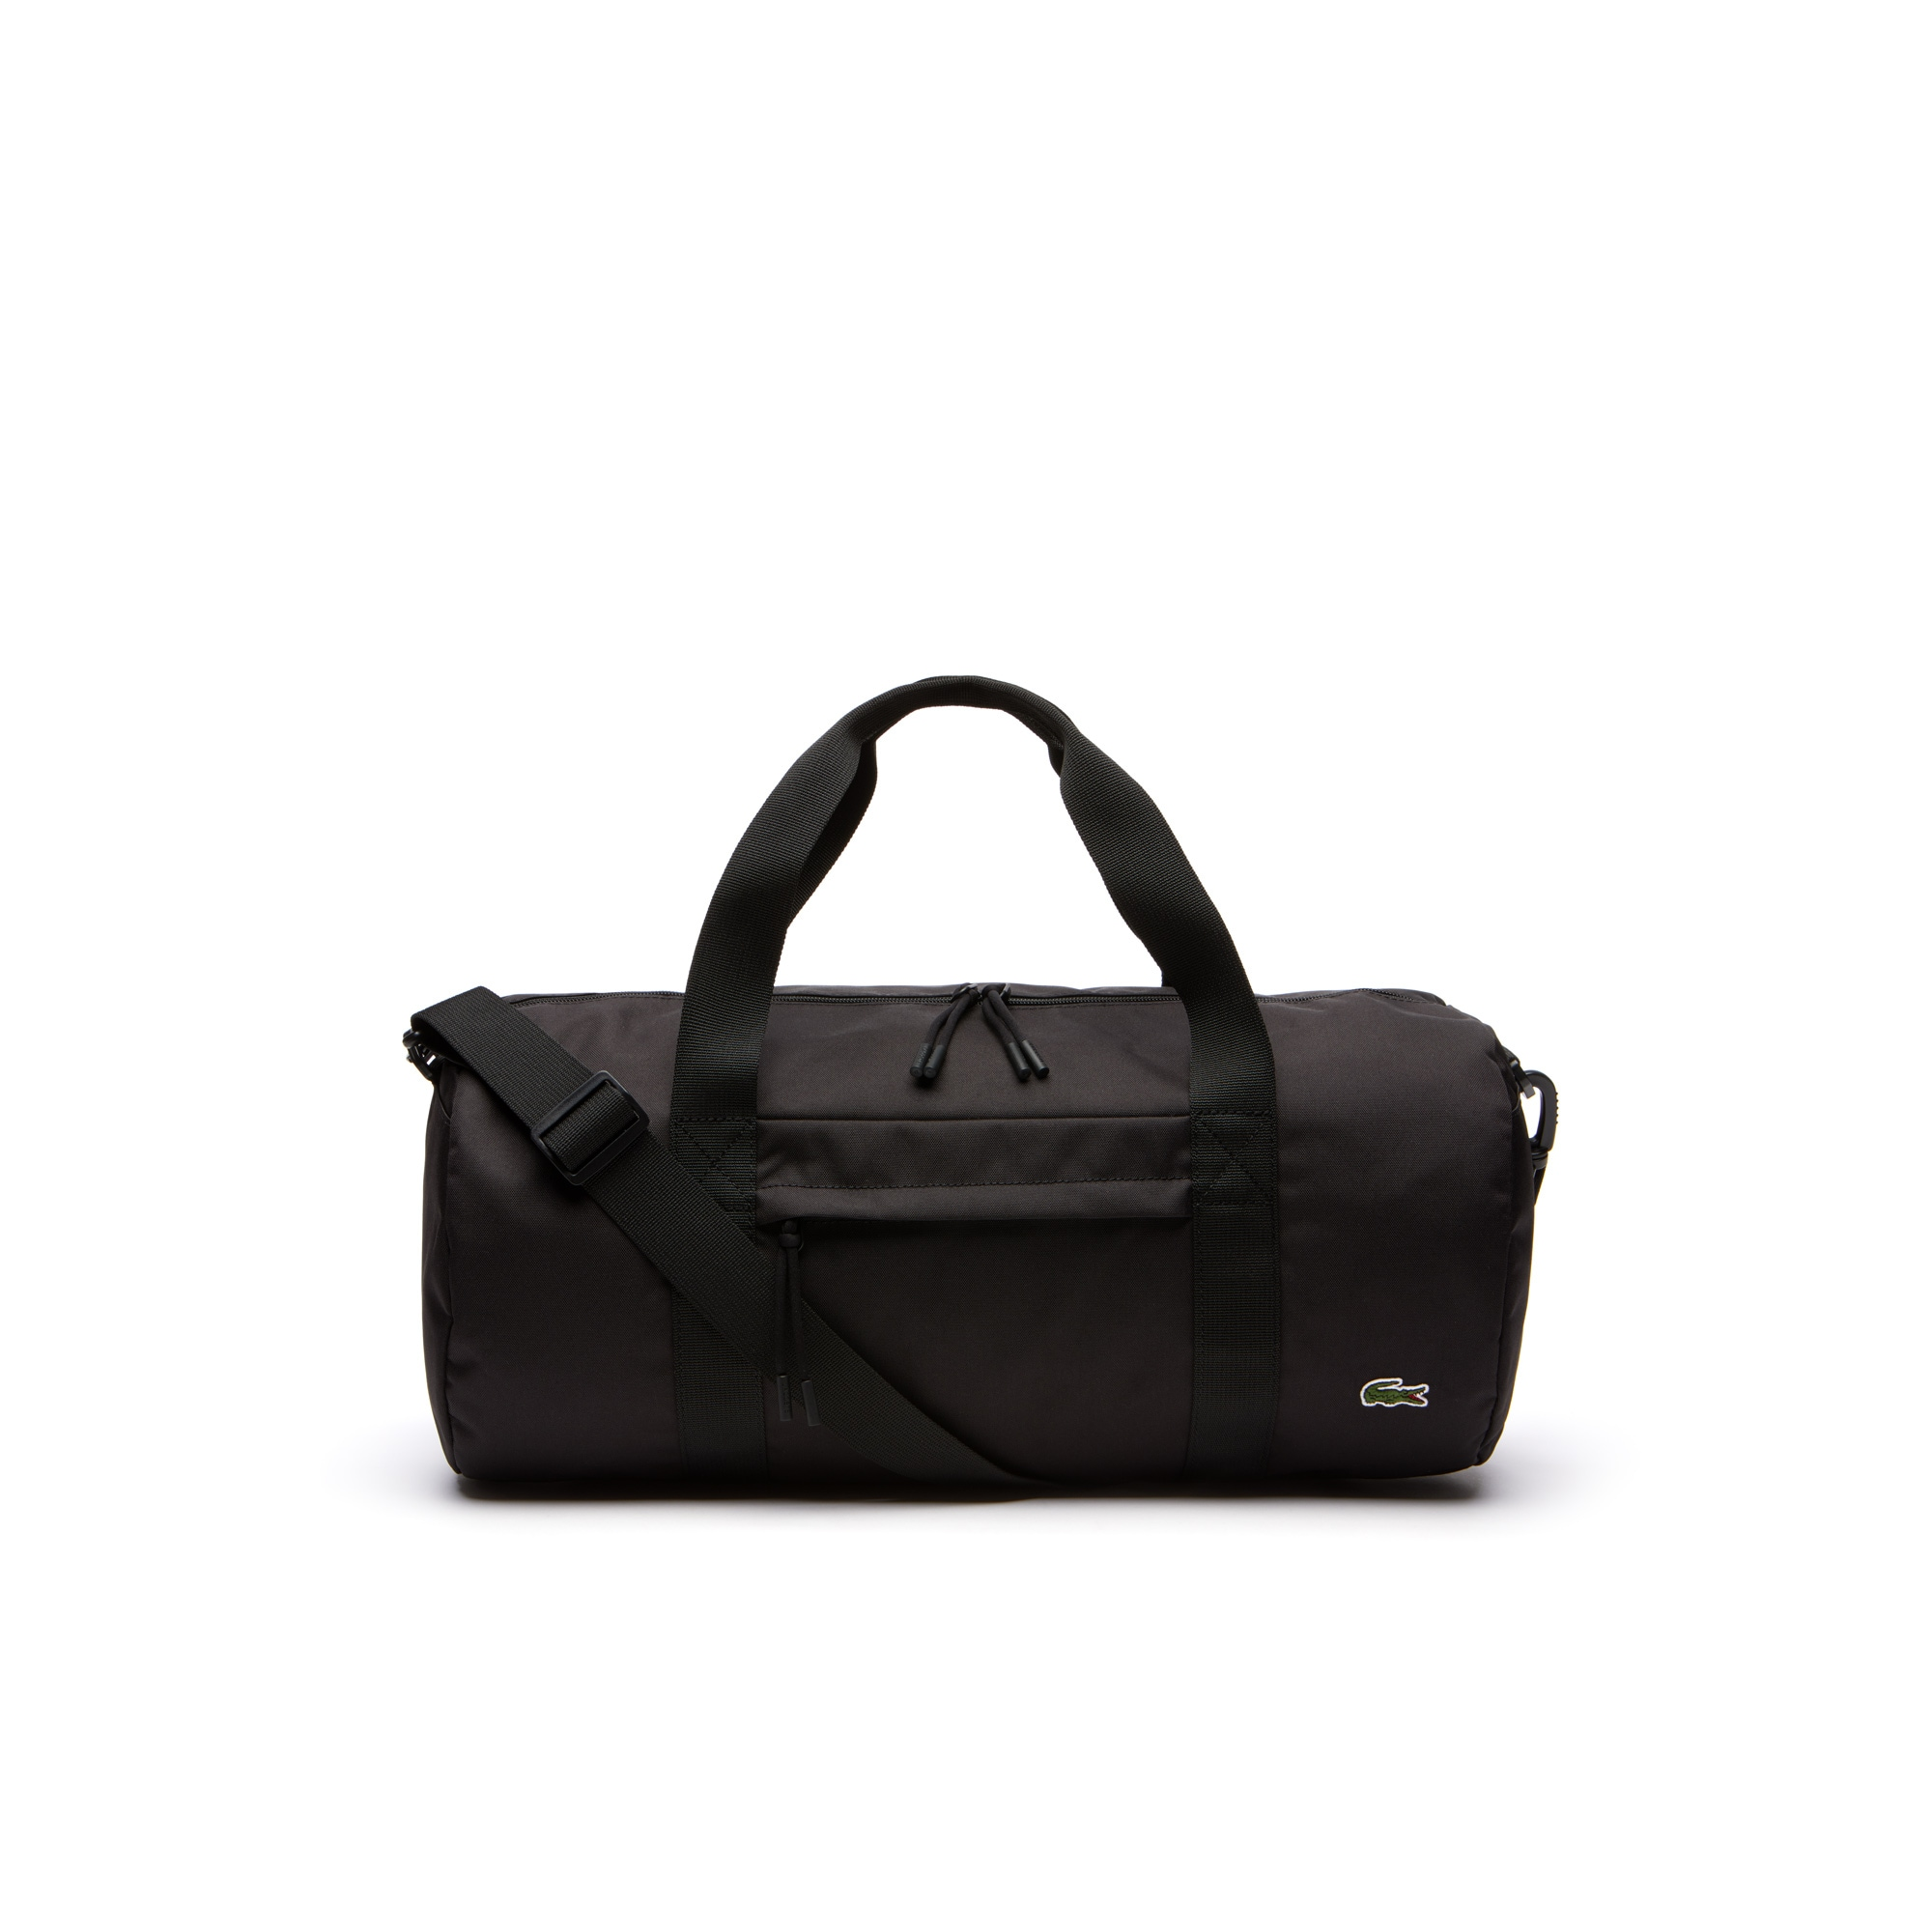 Men's Néocroc Canvas Roll Bag